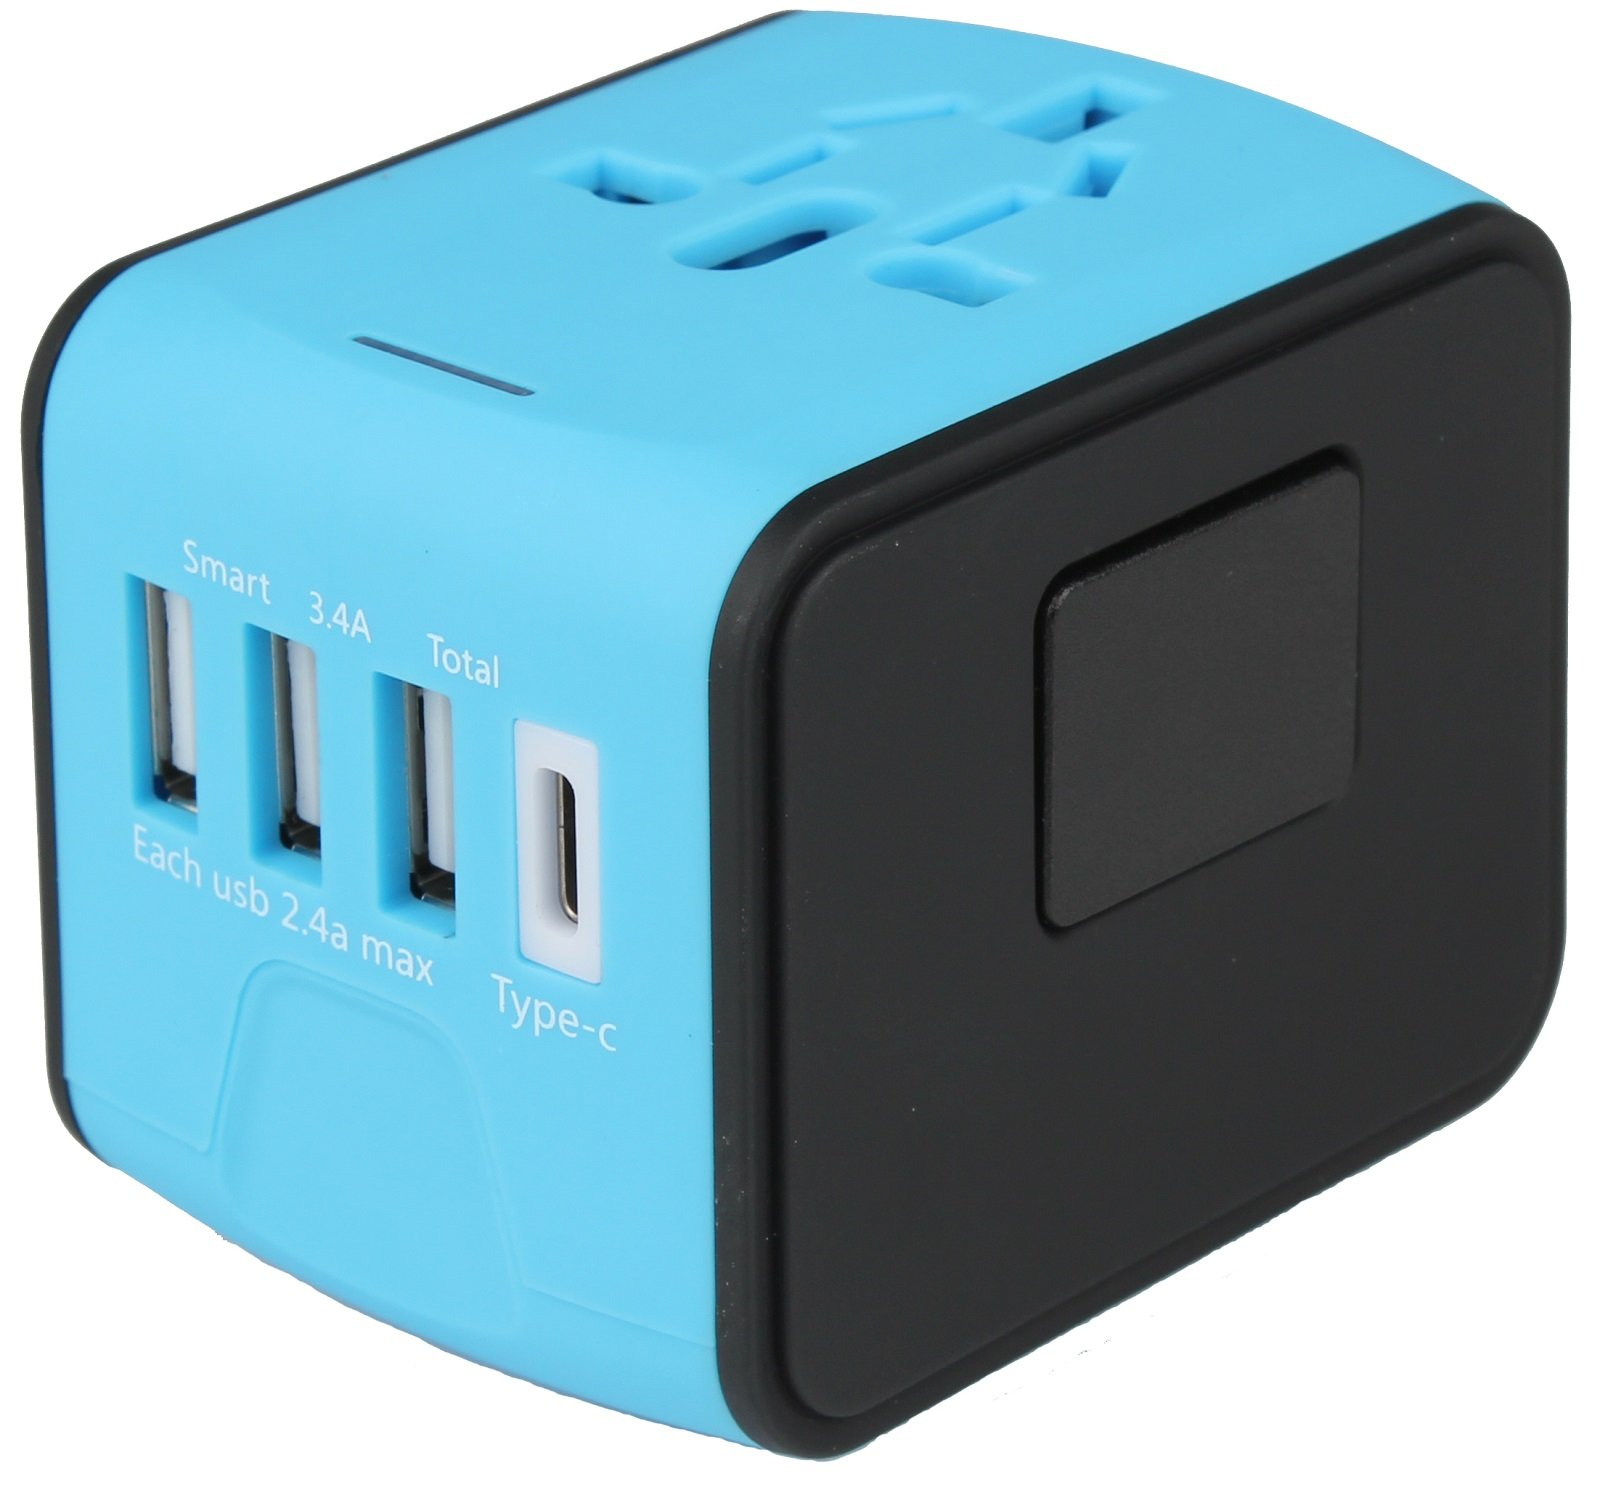 All-In-One International Travel Plug Adapter with 4 USB Ports-Great for iPhone/Smartphone/Laptop by Bangder (Image #2)